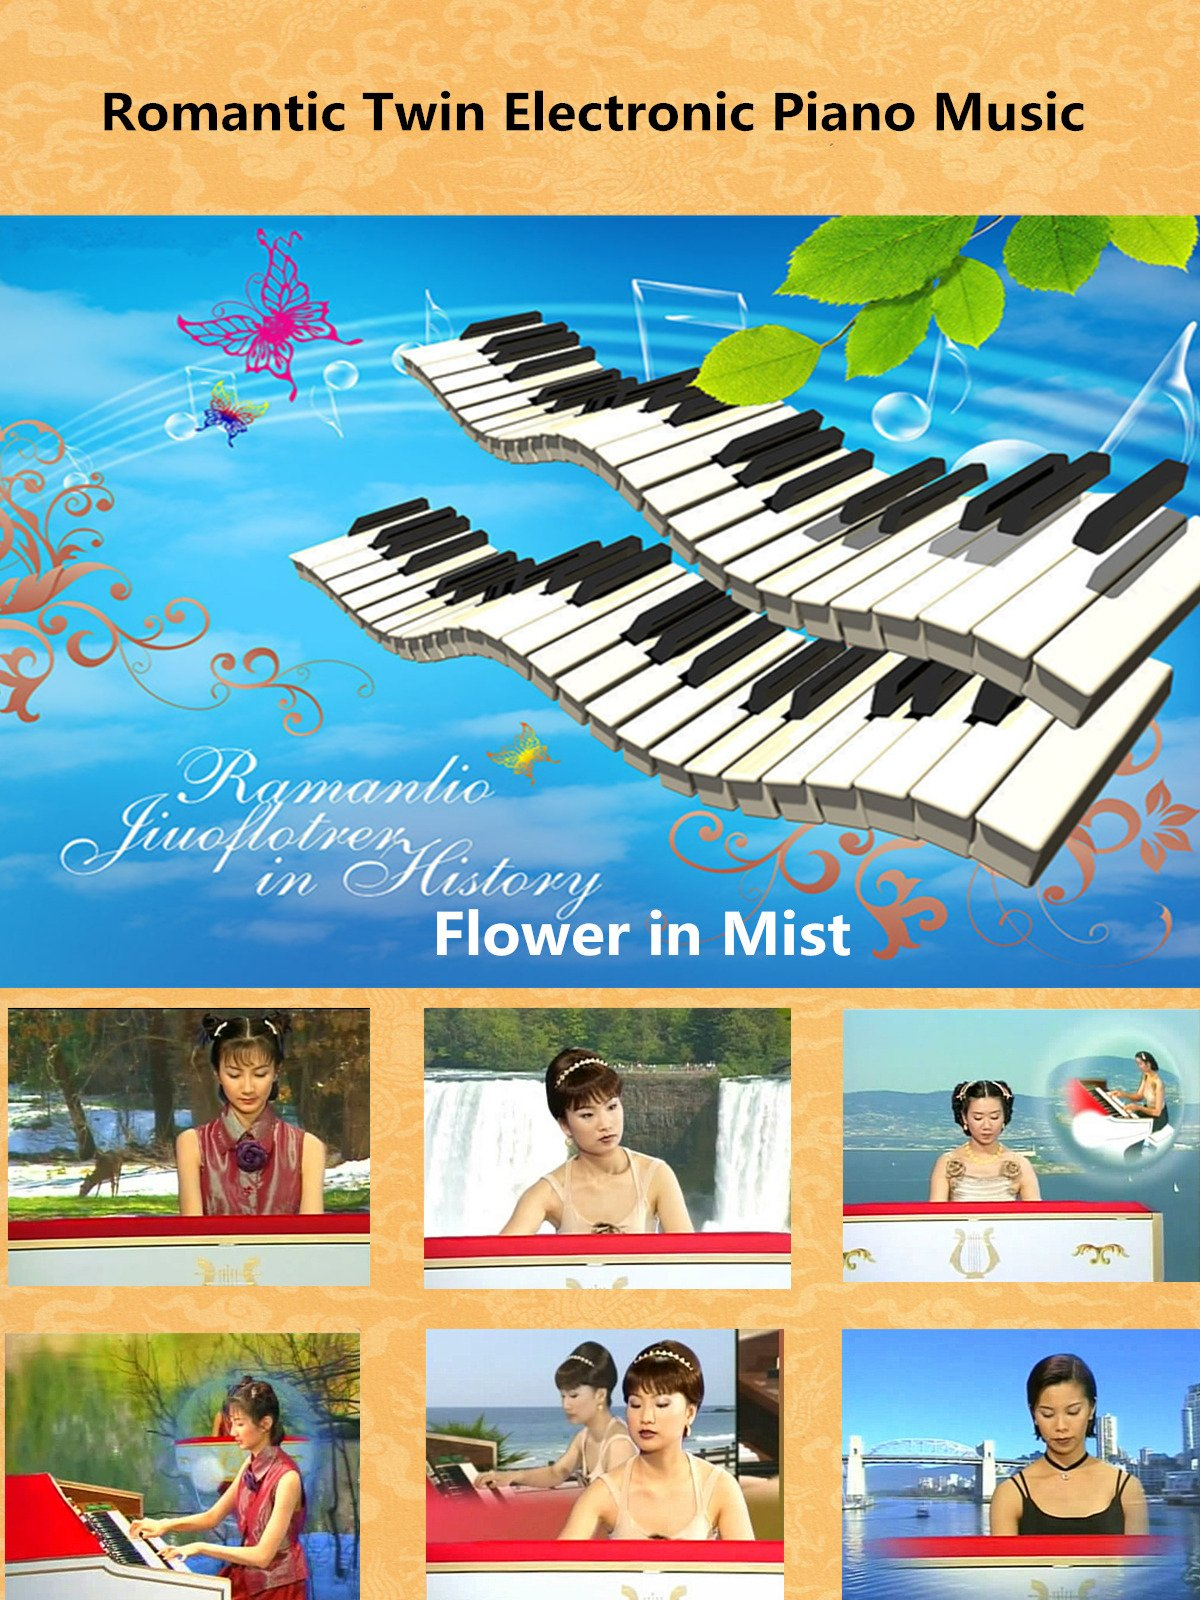 Clip: Flower in Mist